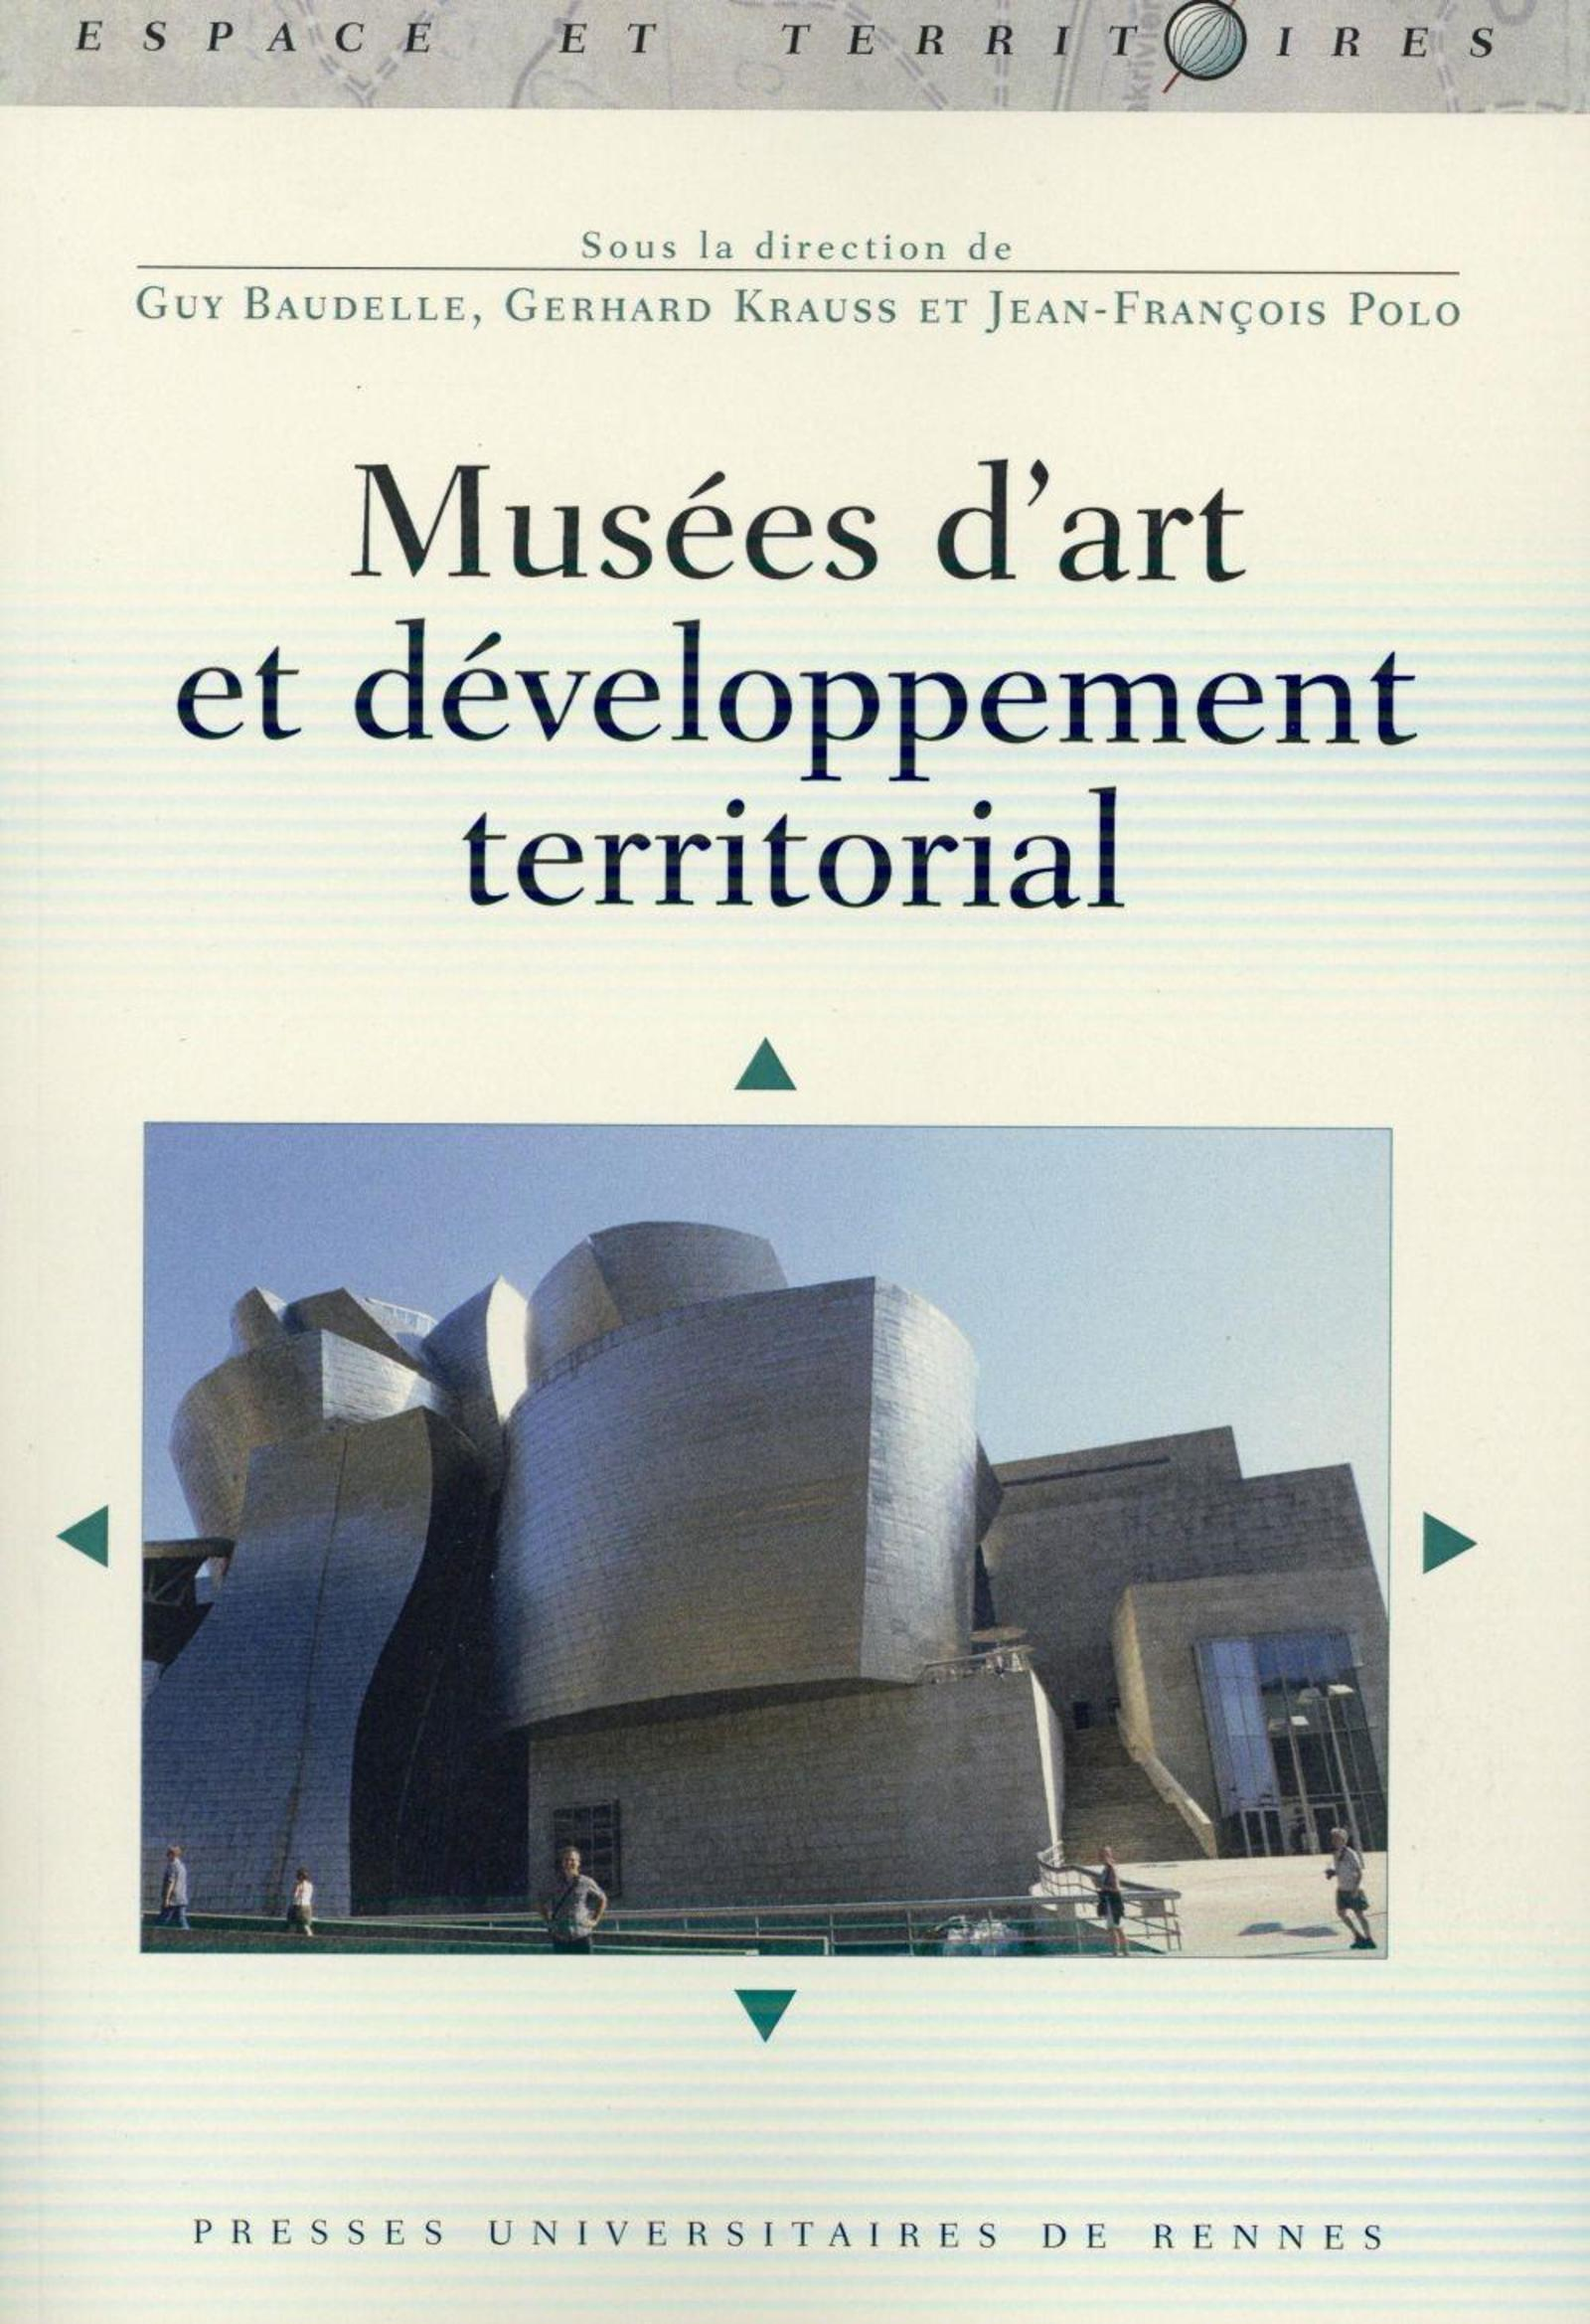 MUSEES D'ART ET DEVELOPPEMENT TERRITORIAL